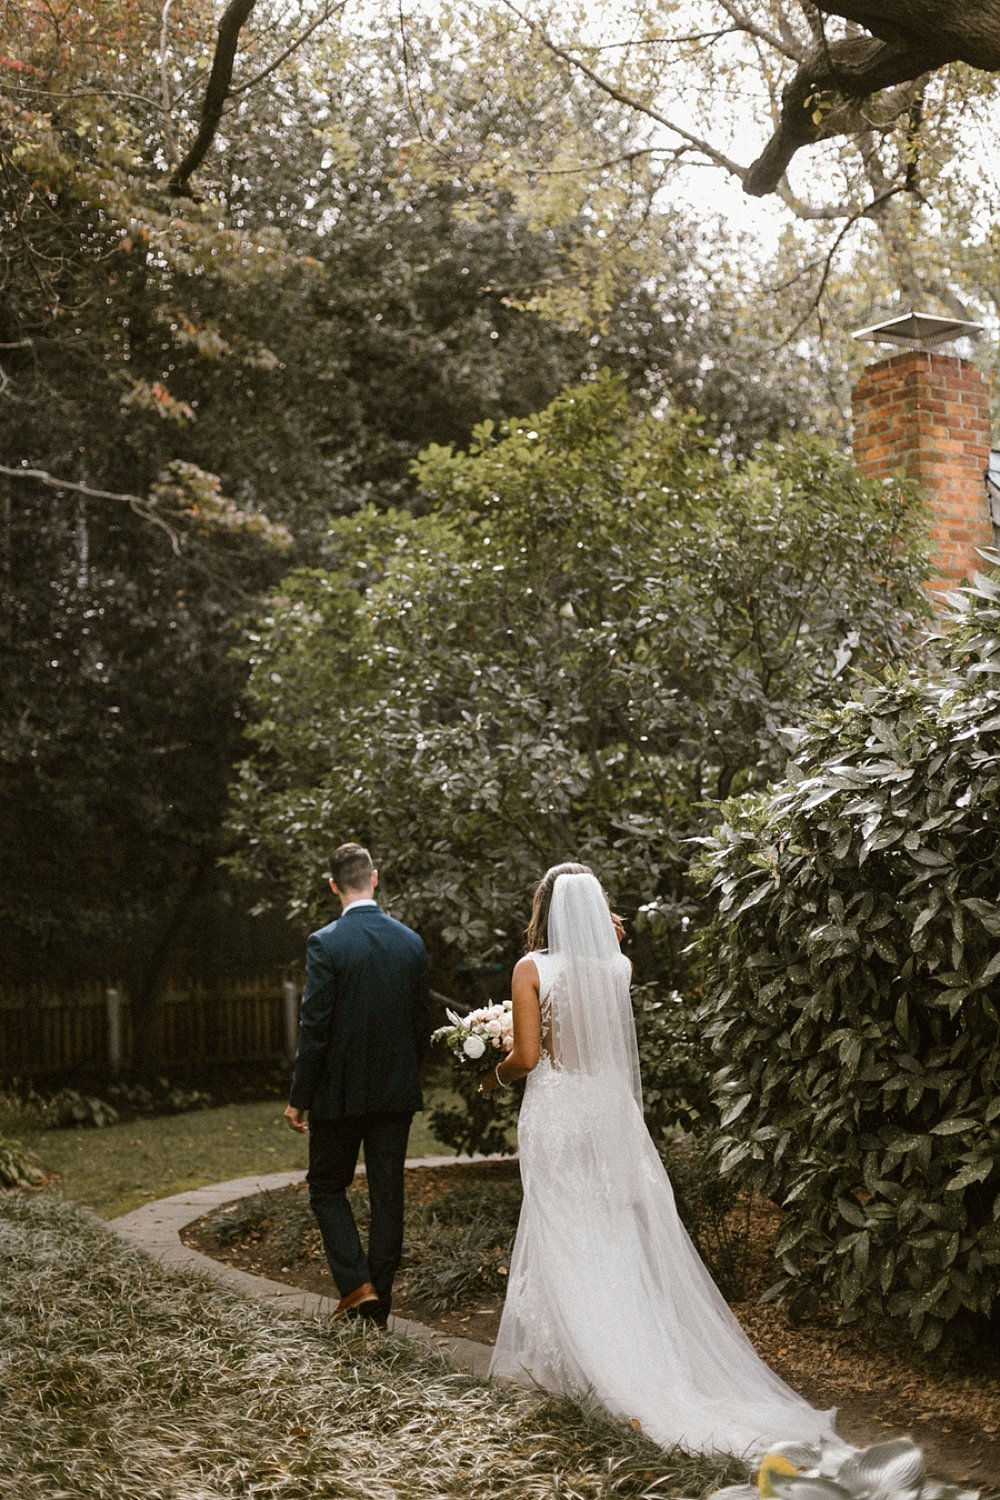 Marryland Weddings Romantic Secret Garden Wedding TIdewater Inn Victoria Selman Photography_0905.jpg